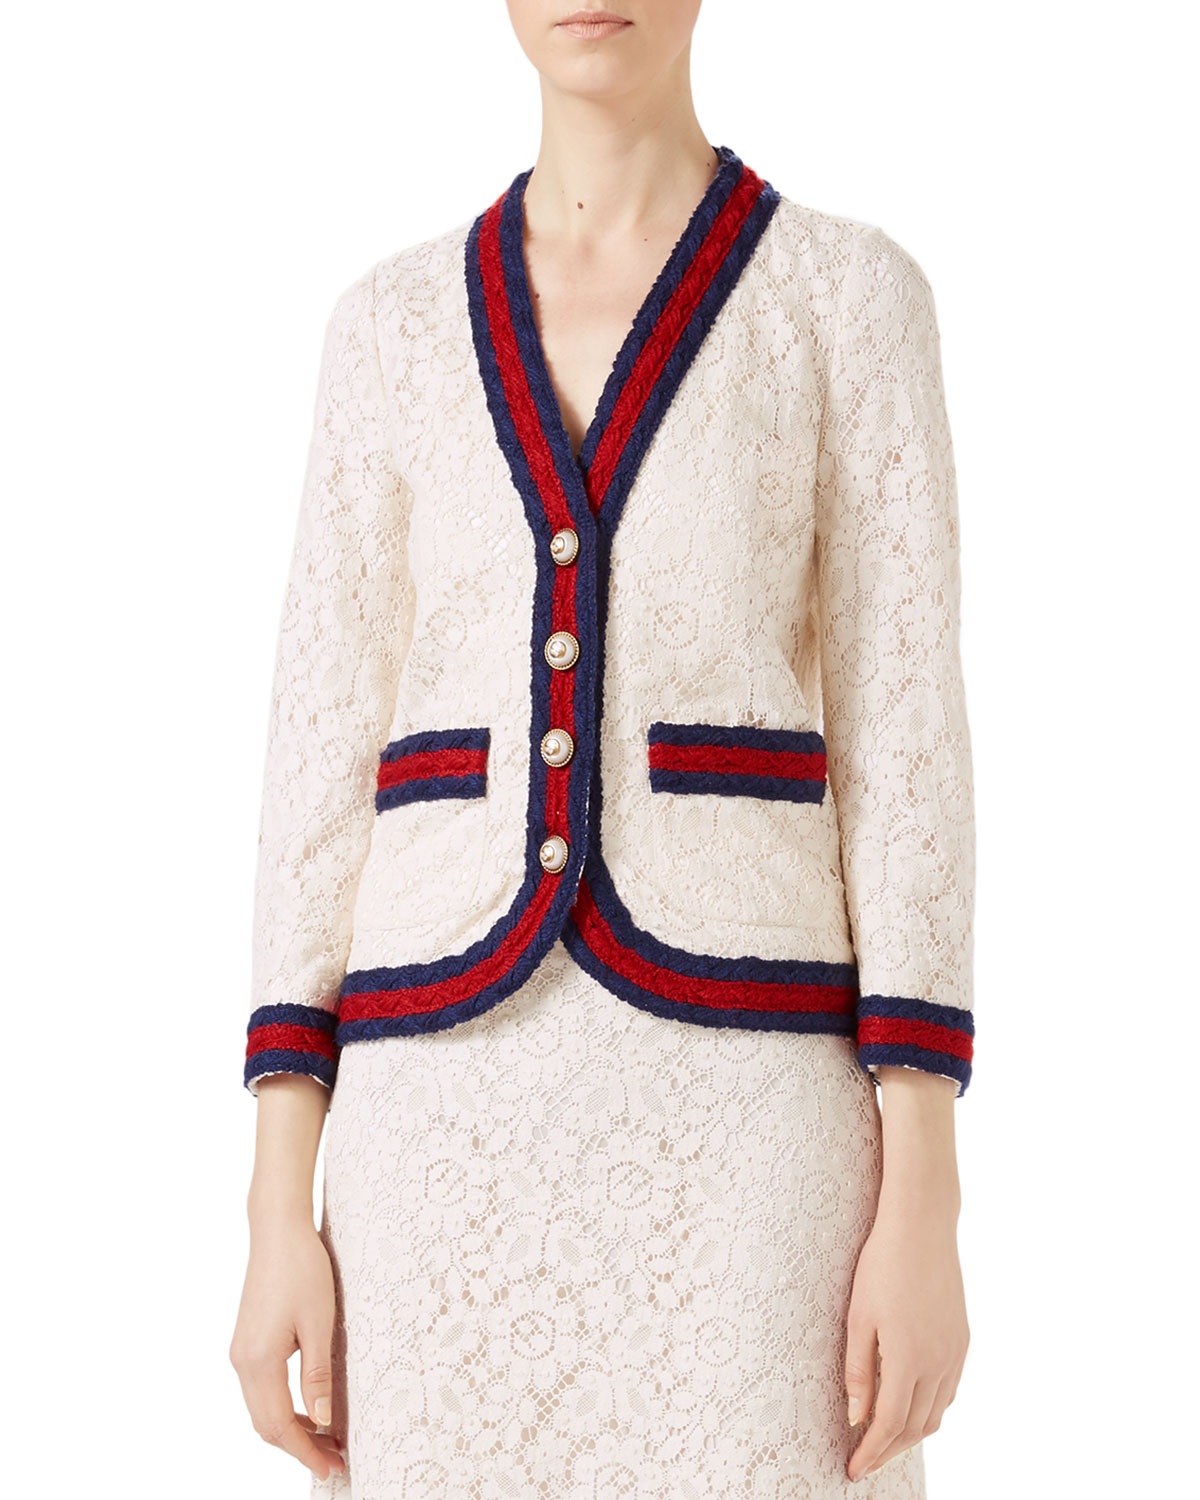 Cluny Lace Jacket with Web, White